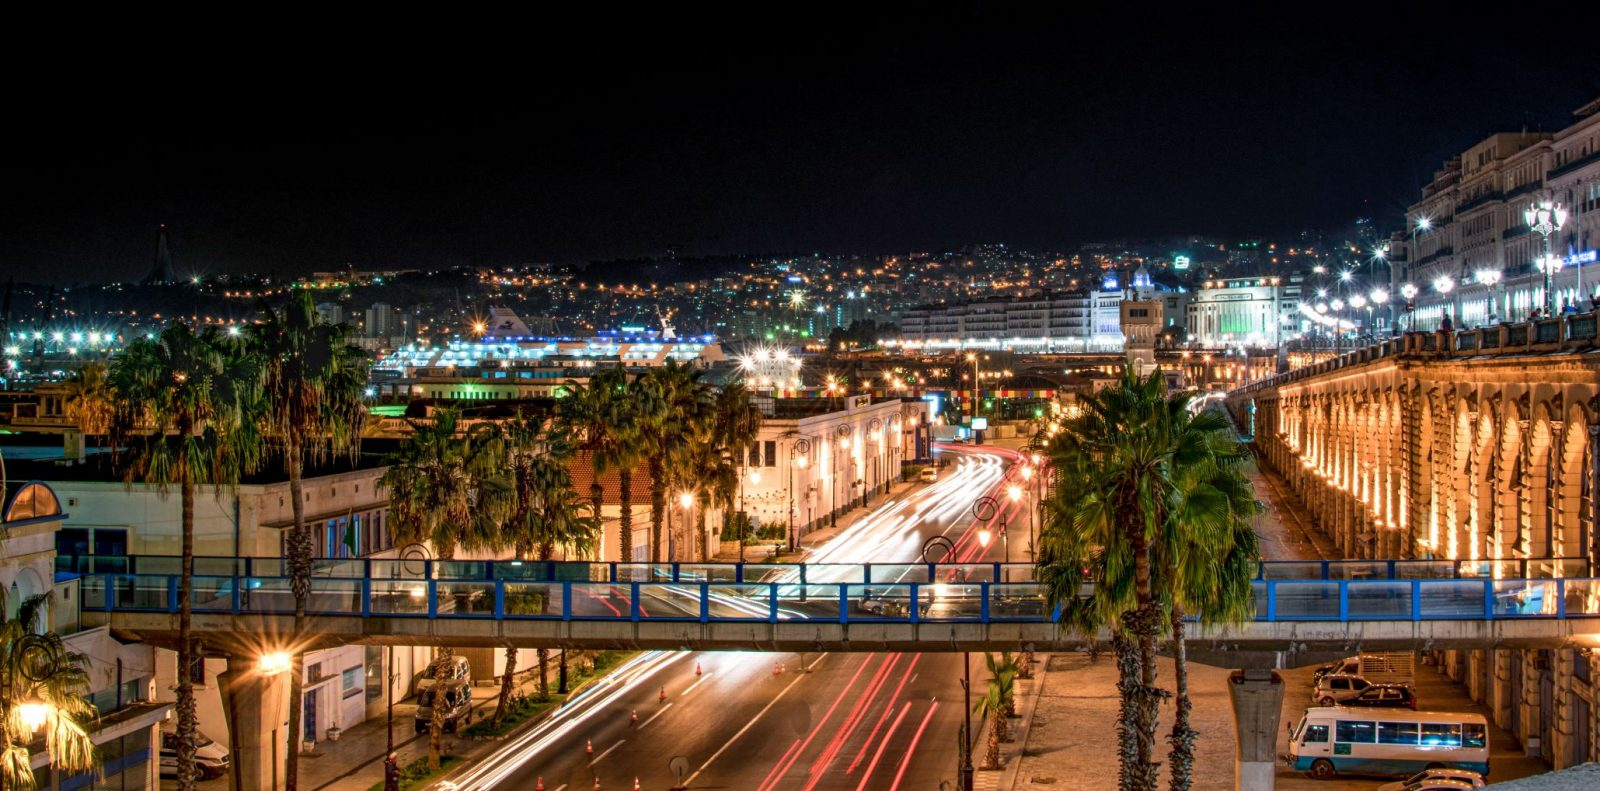 Photo of Algiers at night. USTDA-funded technical assistance will help Algeria modernize its electricity grid and facilitate the country's transition toward renewable energy.